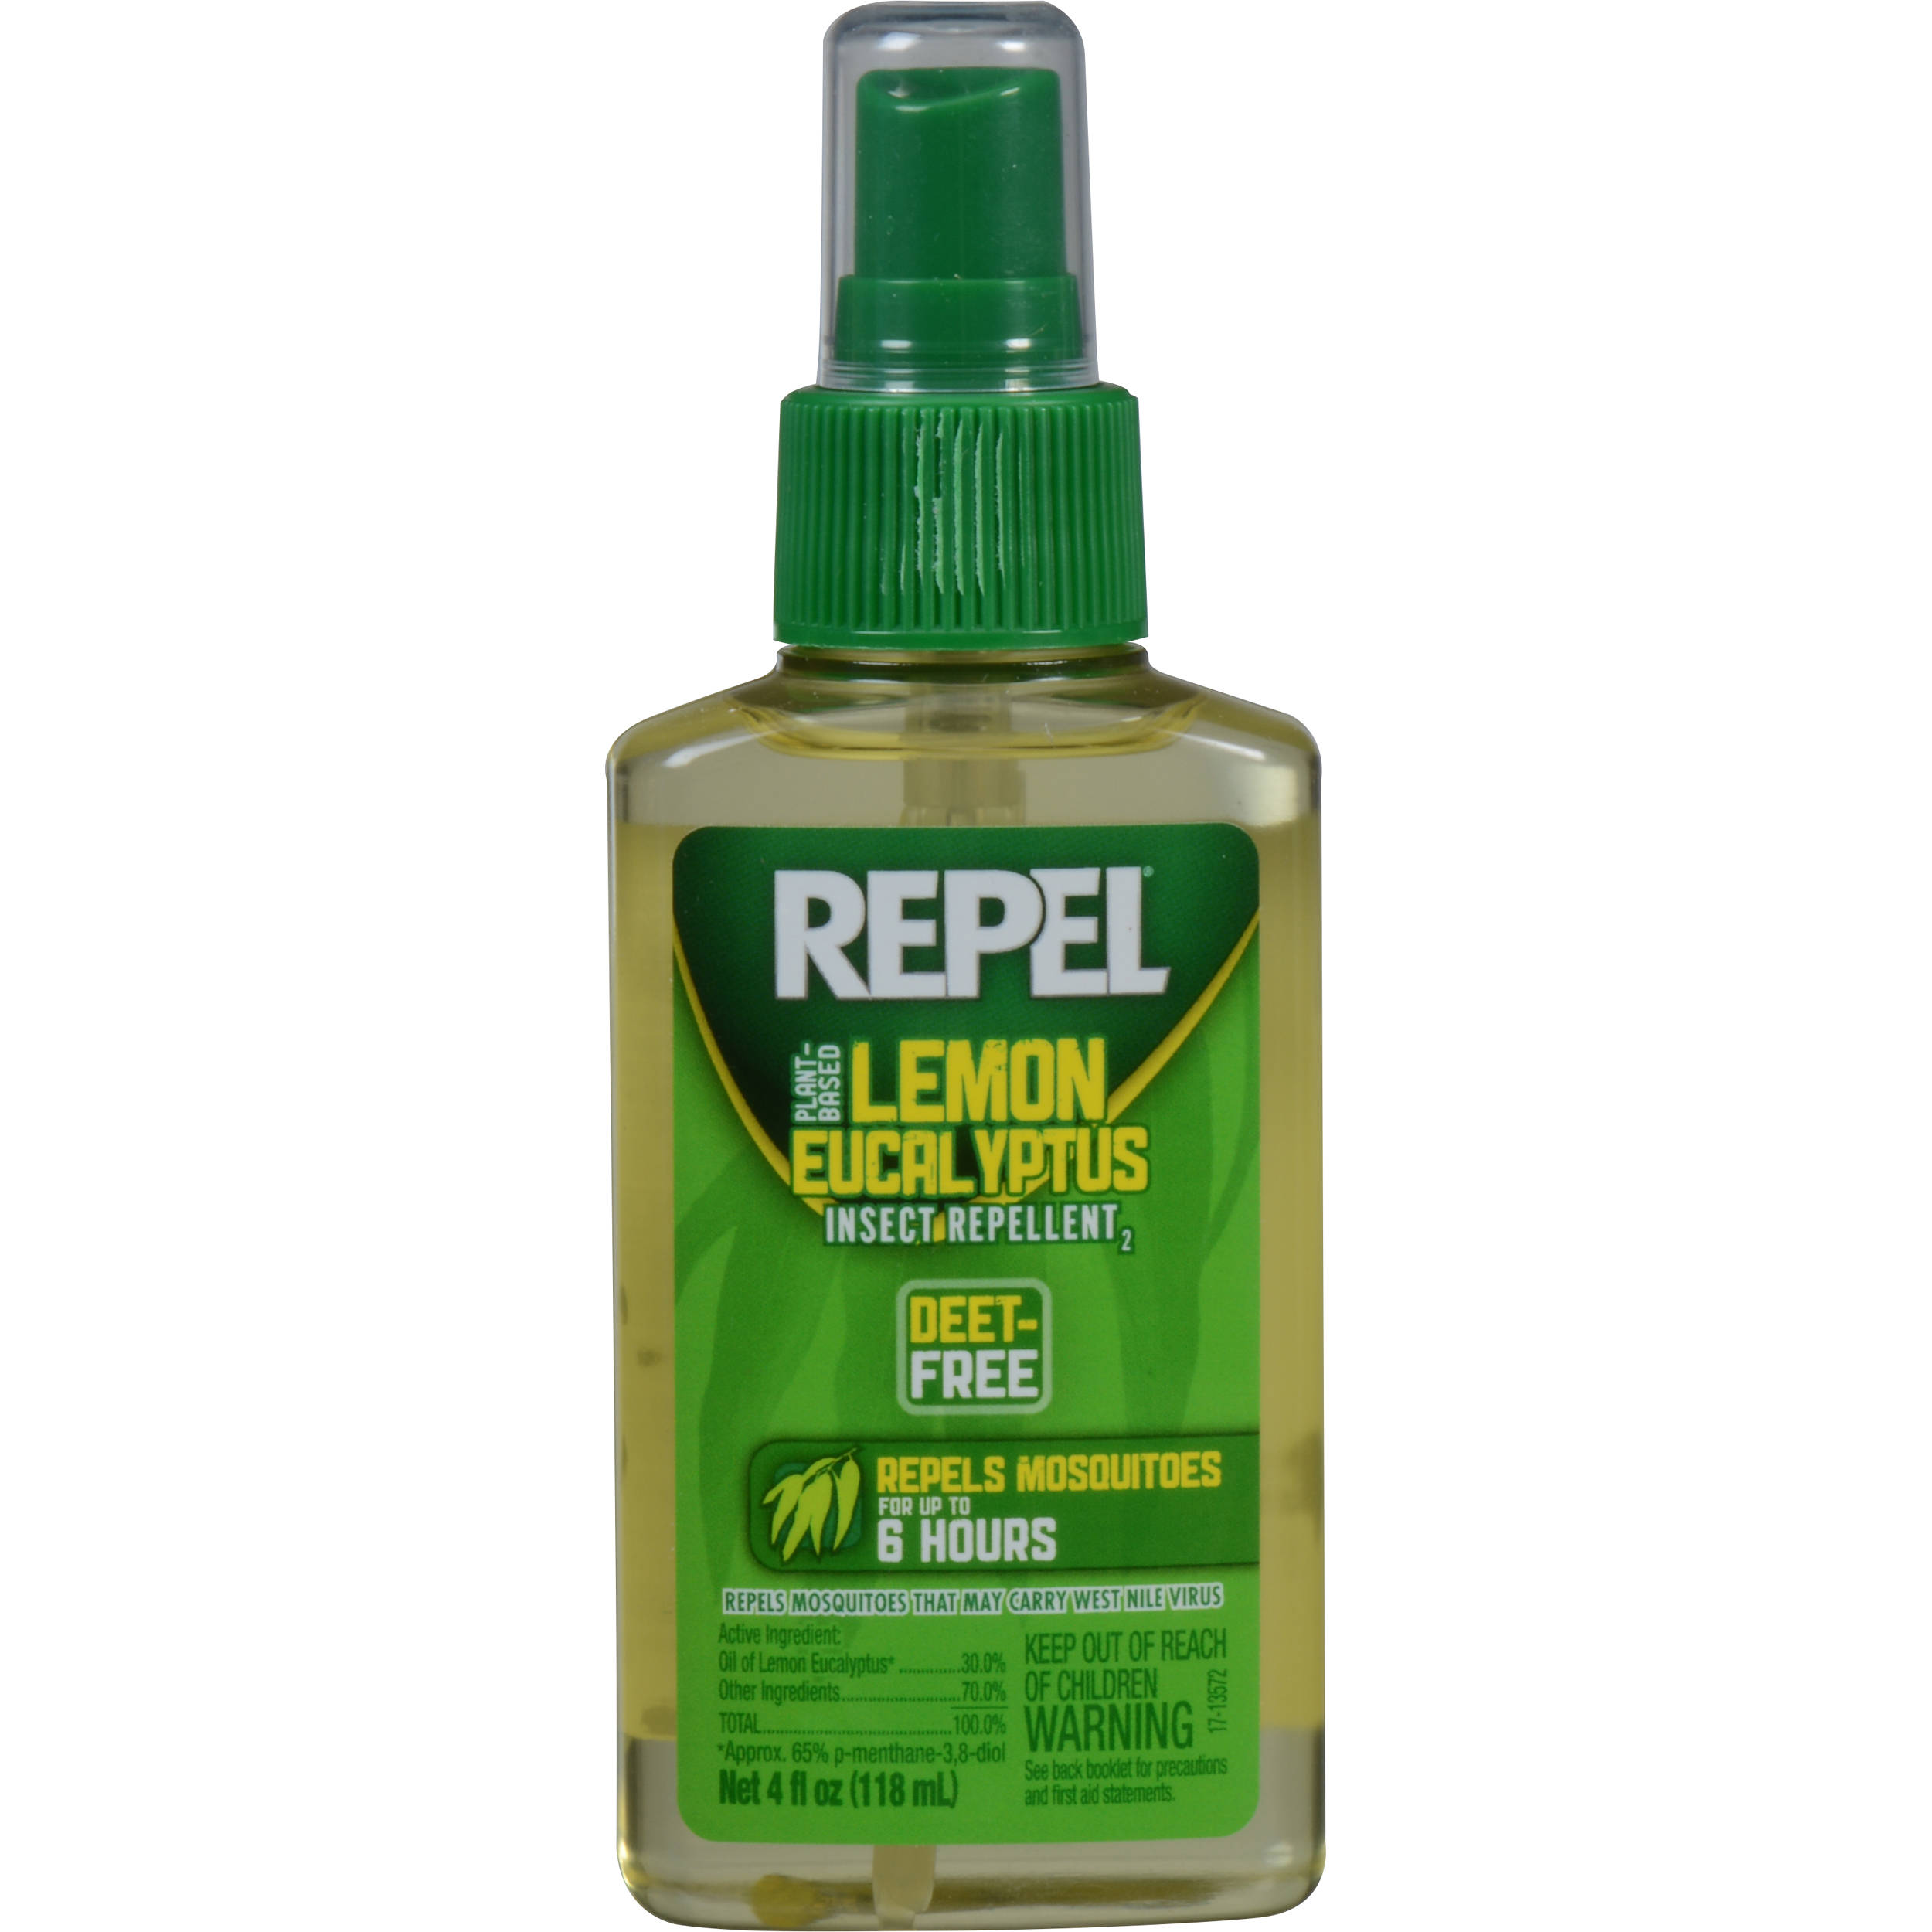 Repel Lemon Eucalyptus Insect Repellent Pump Spray (4 Oz